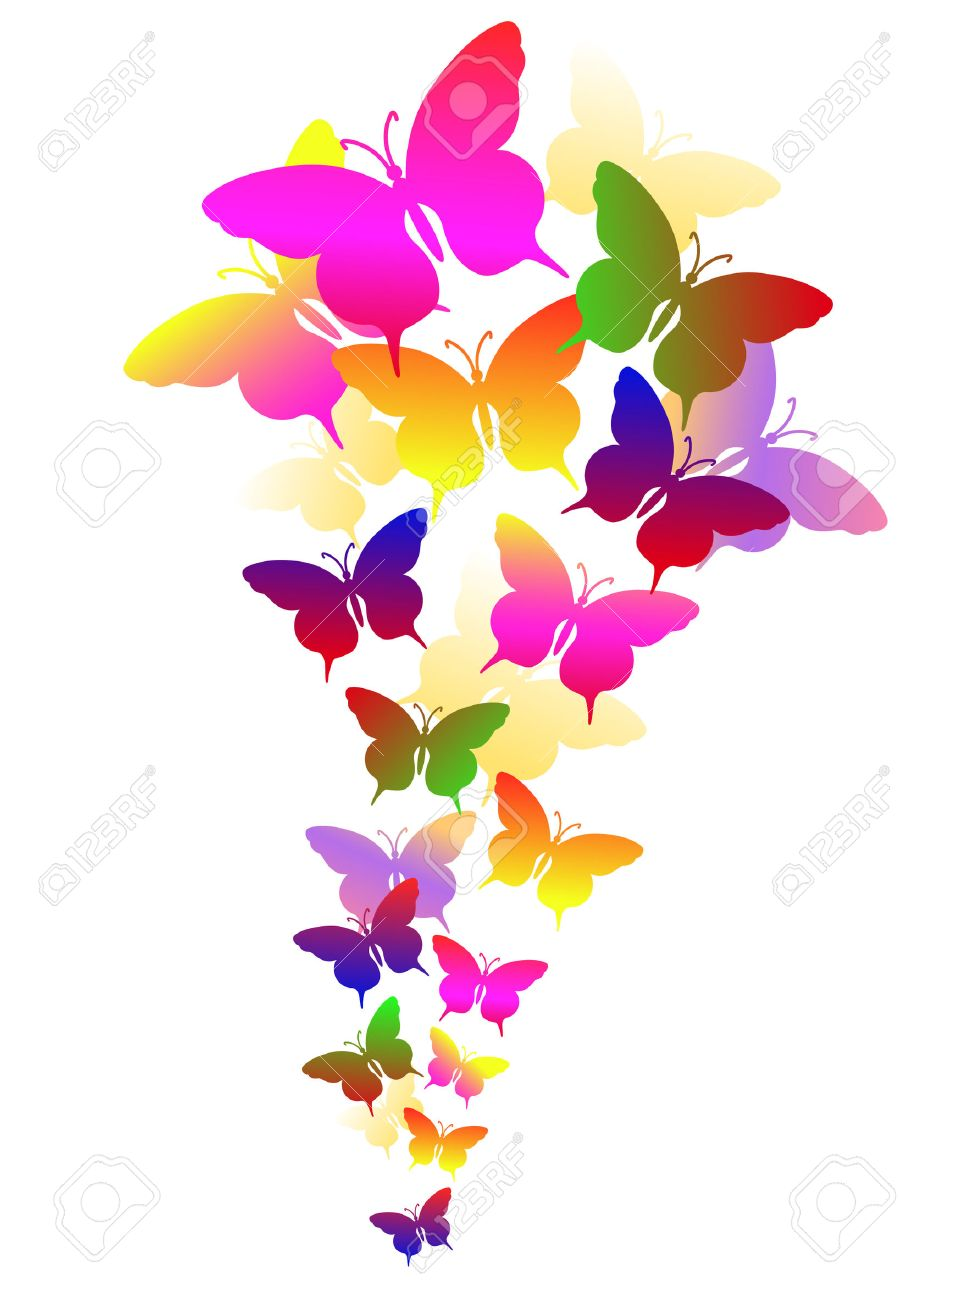 colored abstract background with butterflies - 7075616